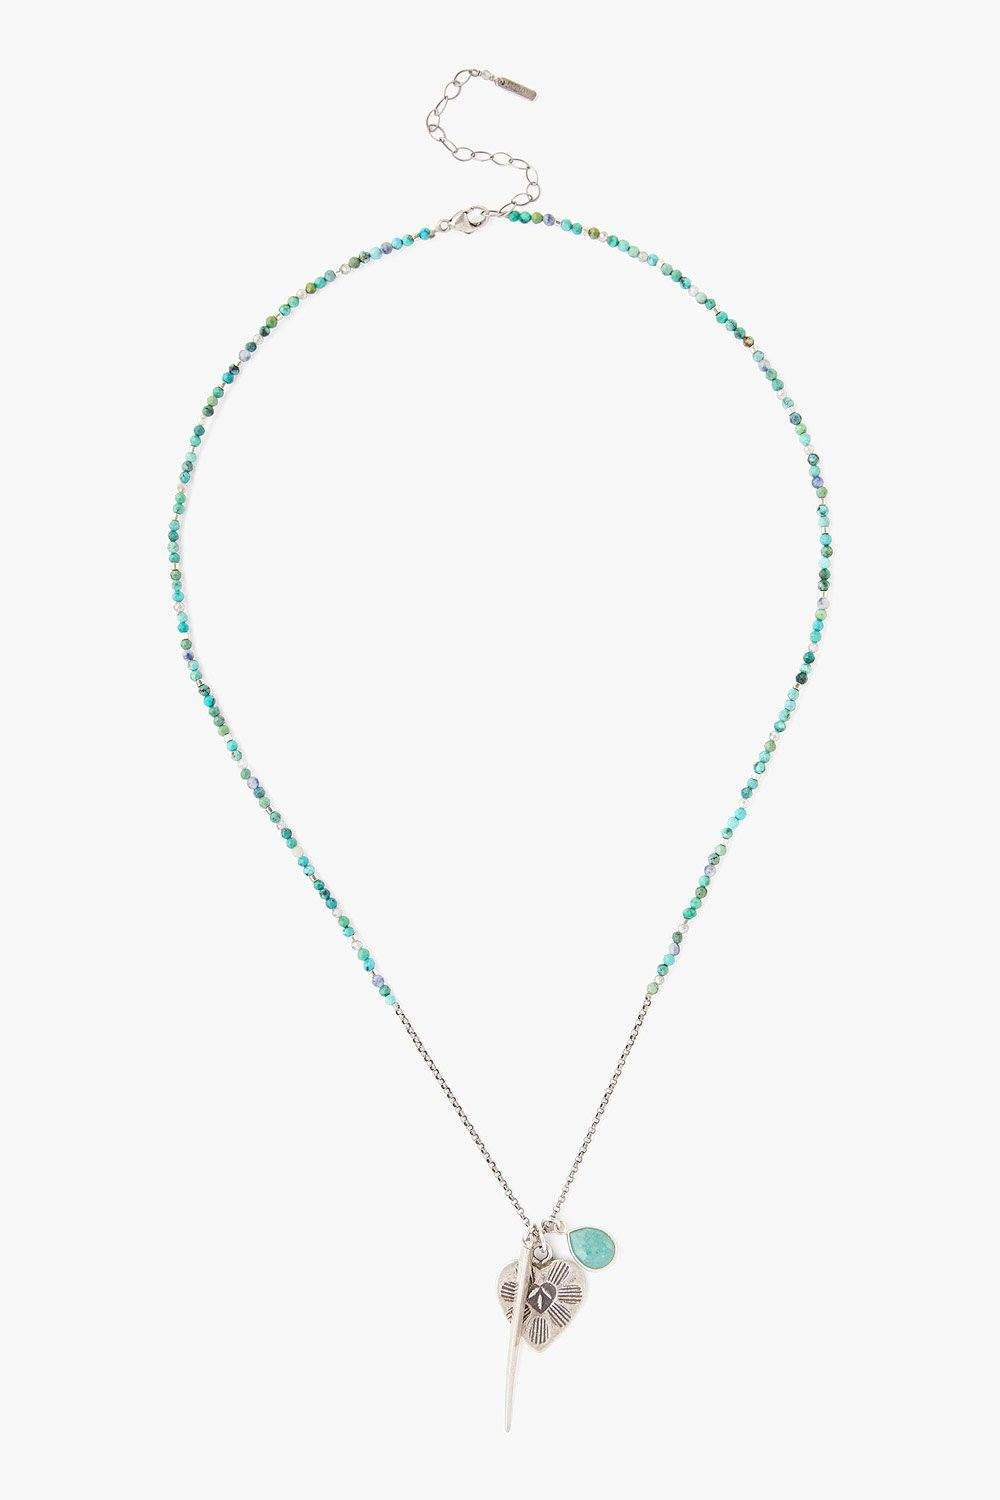 Turquoise and Heart Charm Necklace